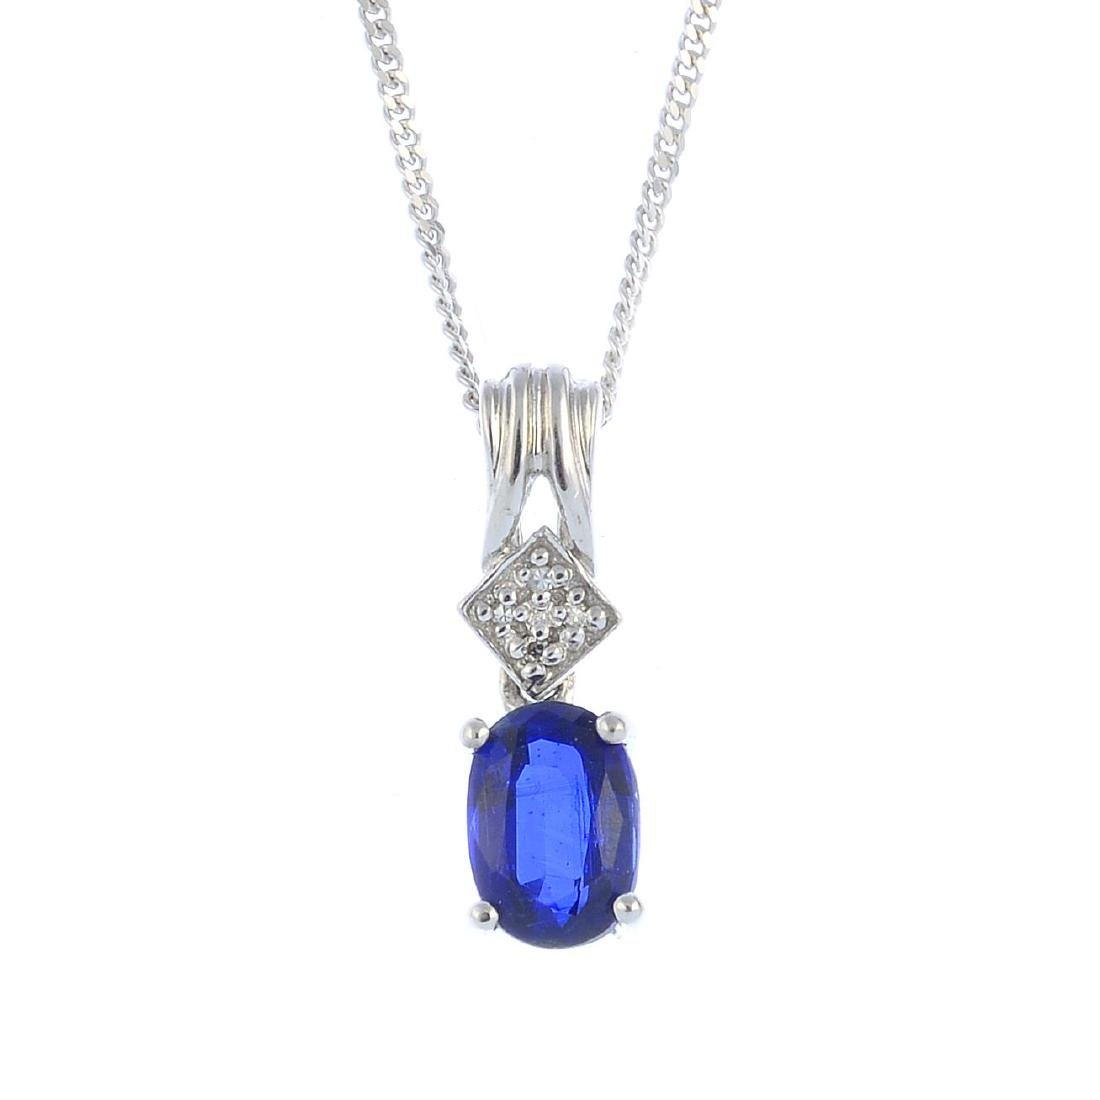 A 9ct gold kyanite and diamond pendant. The oval-shape